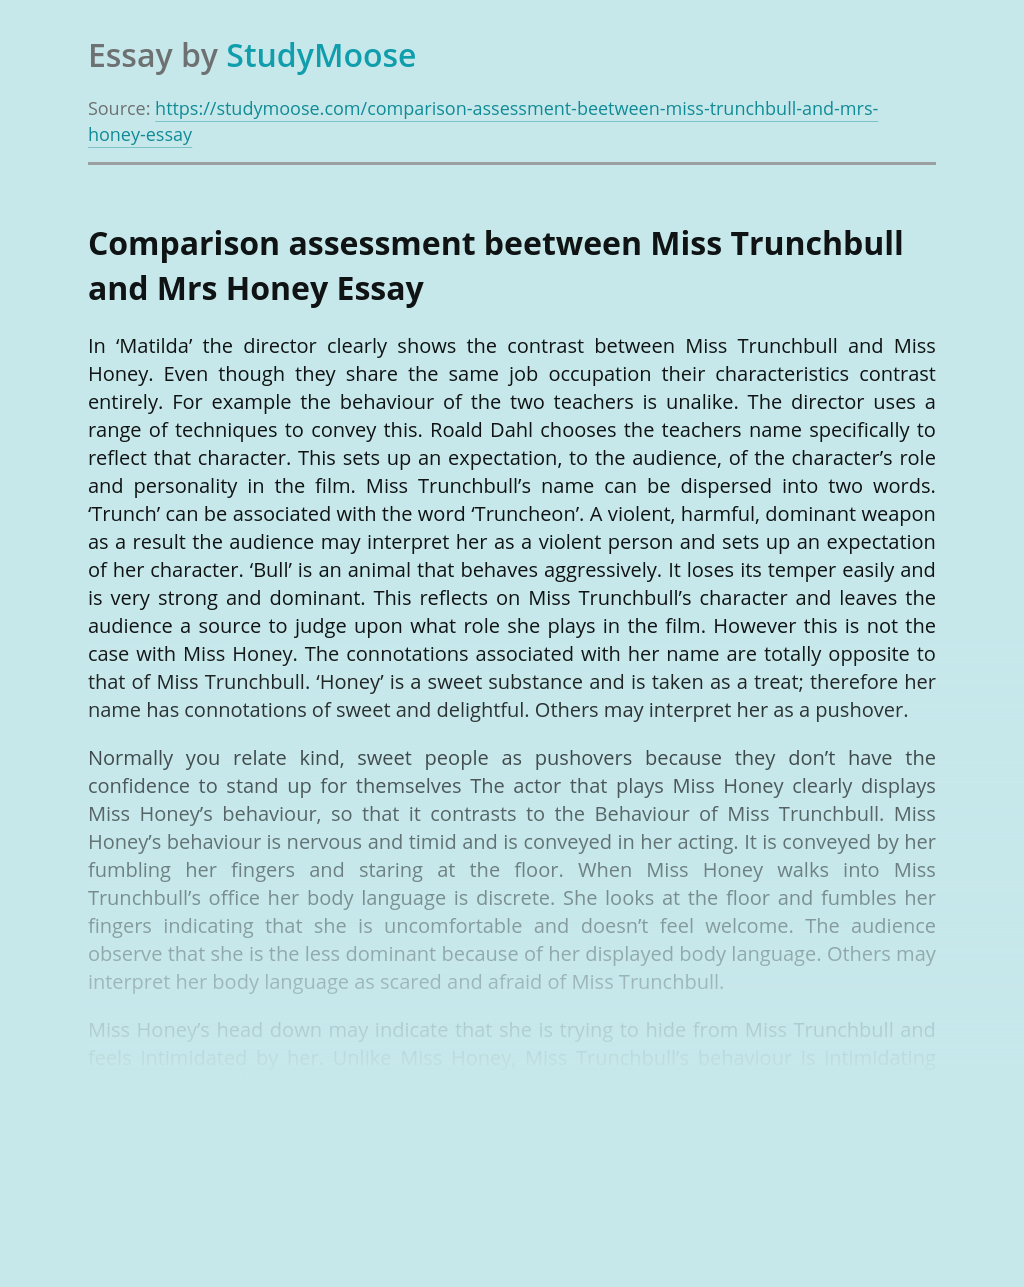 Comparison assessment beetween Miss Trunchbull and Mrs Honey